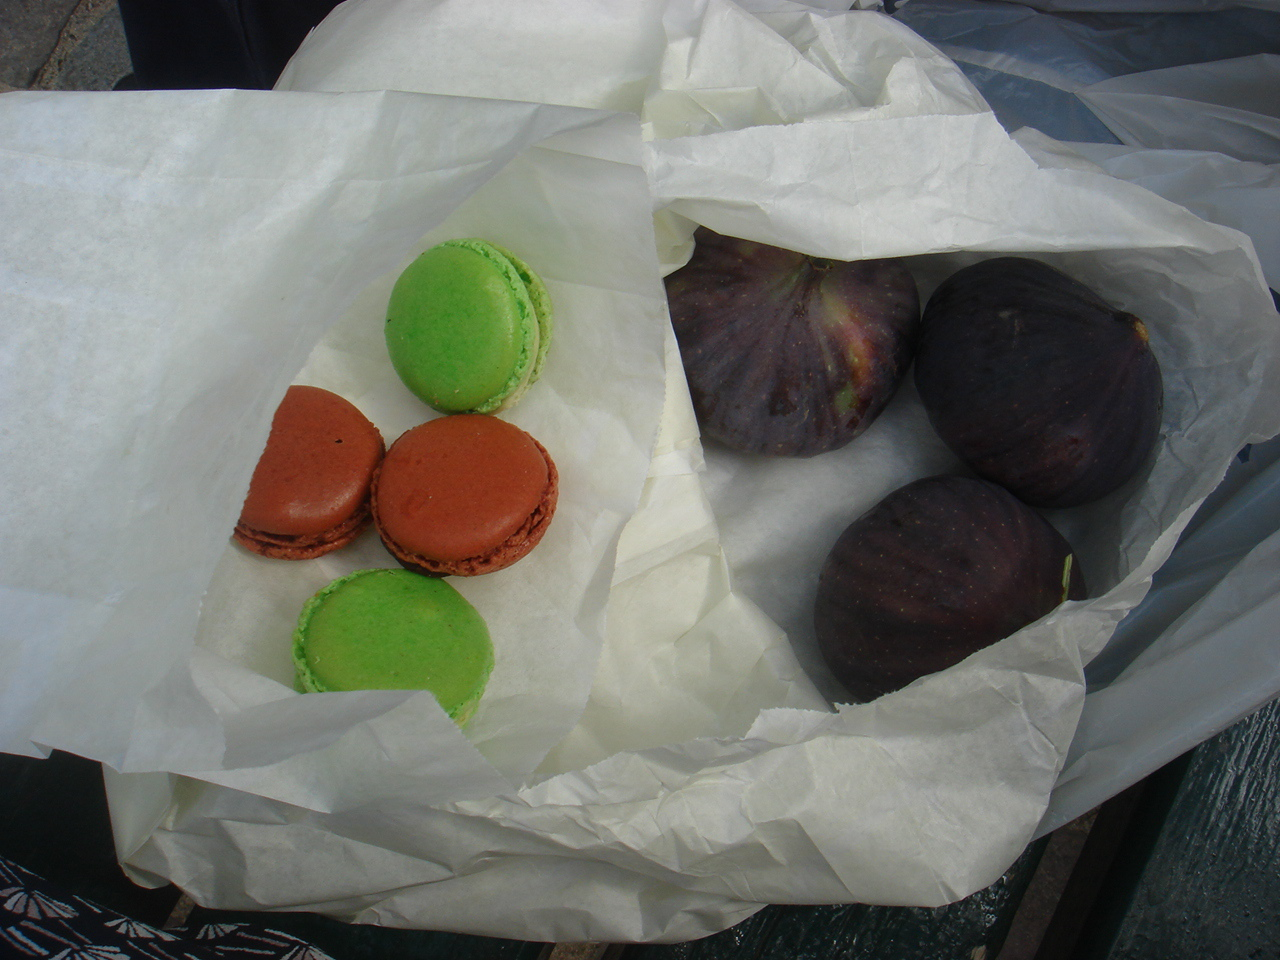 Figs and macaroons - a fine lunch!